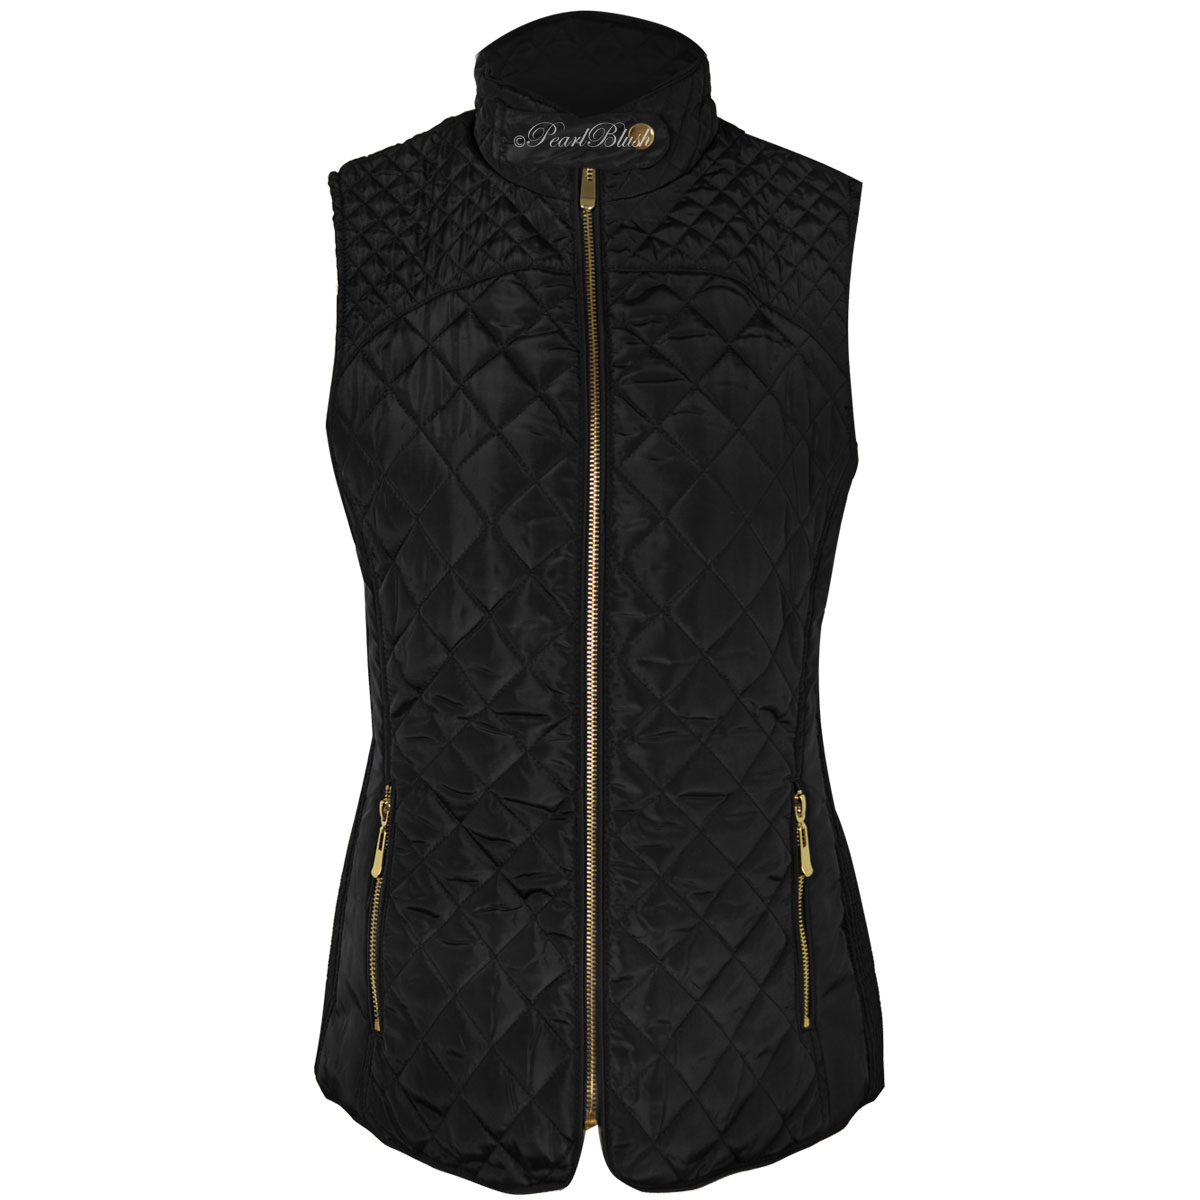 Ideal for warmth, our Women's gilets are versatile & stylish. From quilted gilets to cosy fleece, wear on their own or layer with a coat. Shop the range.